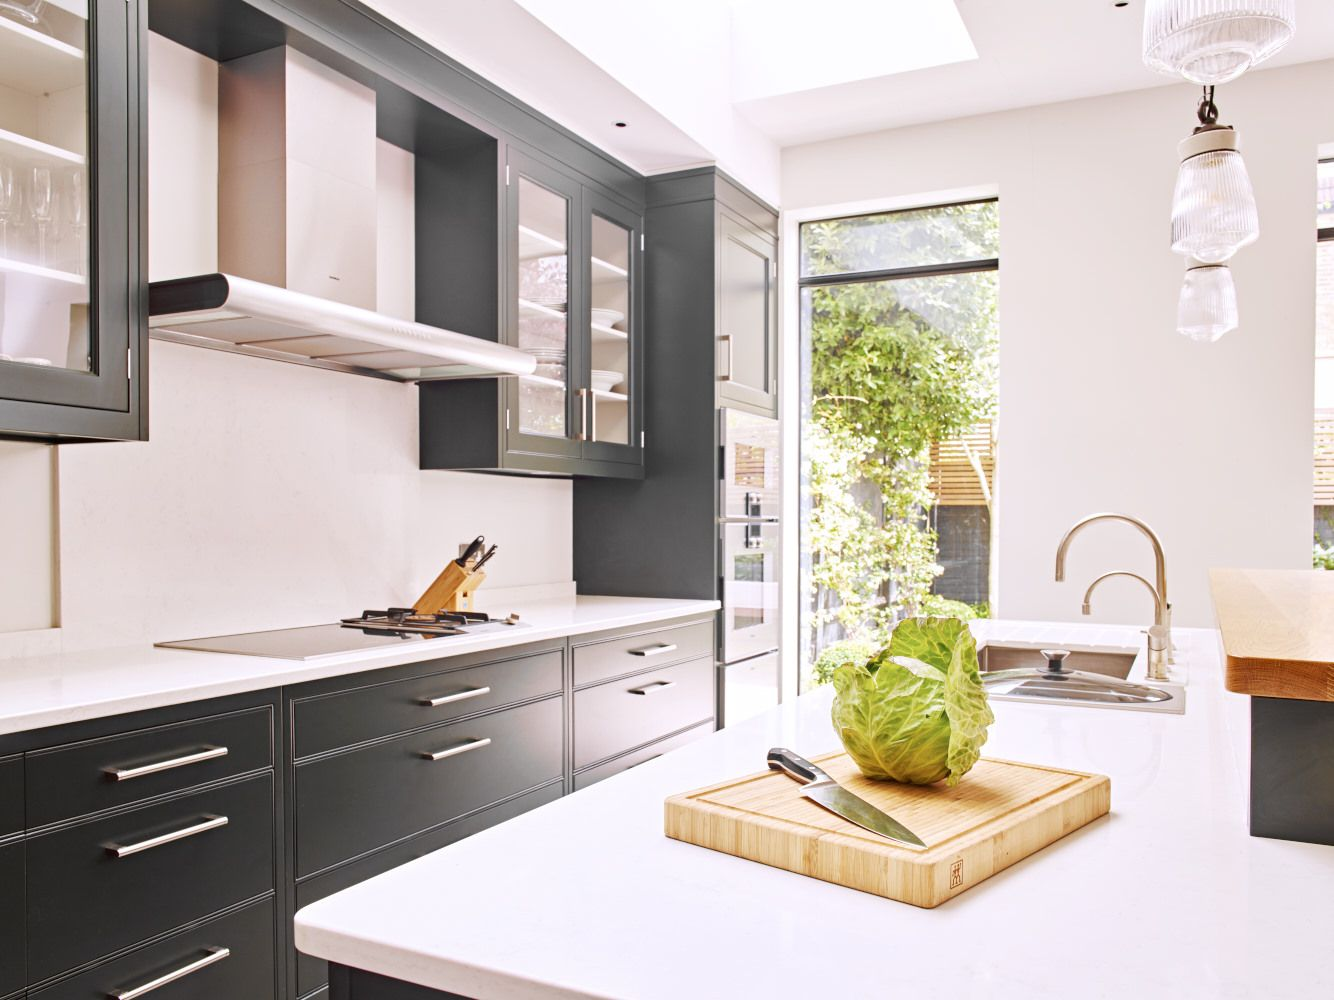 North London Contemporary Classic Bespoke kitchen